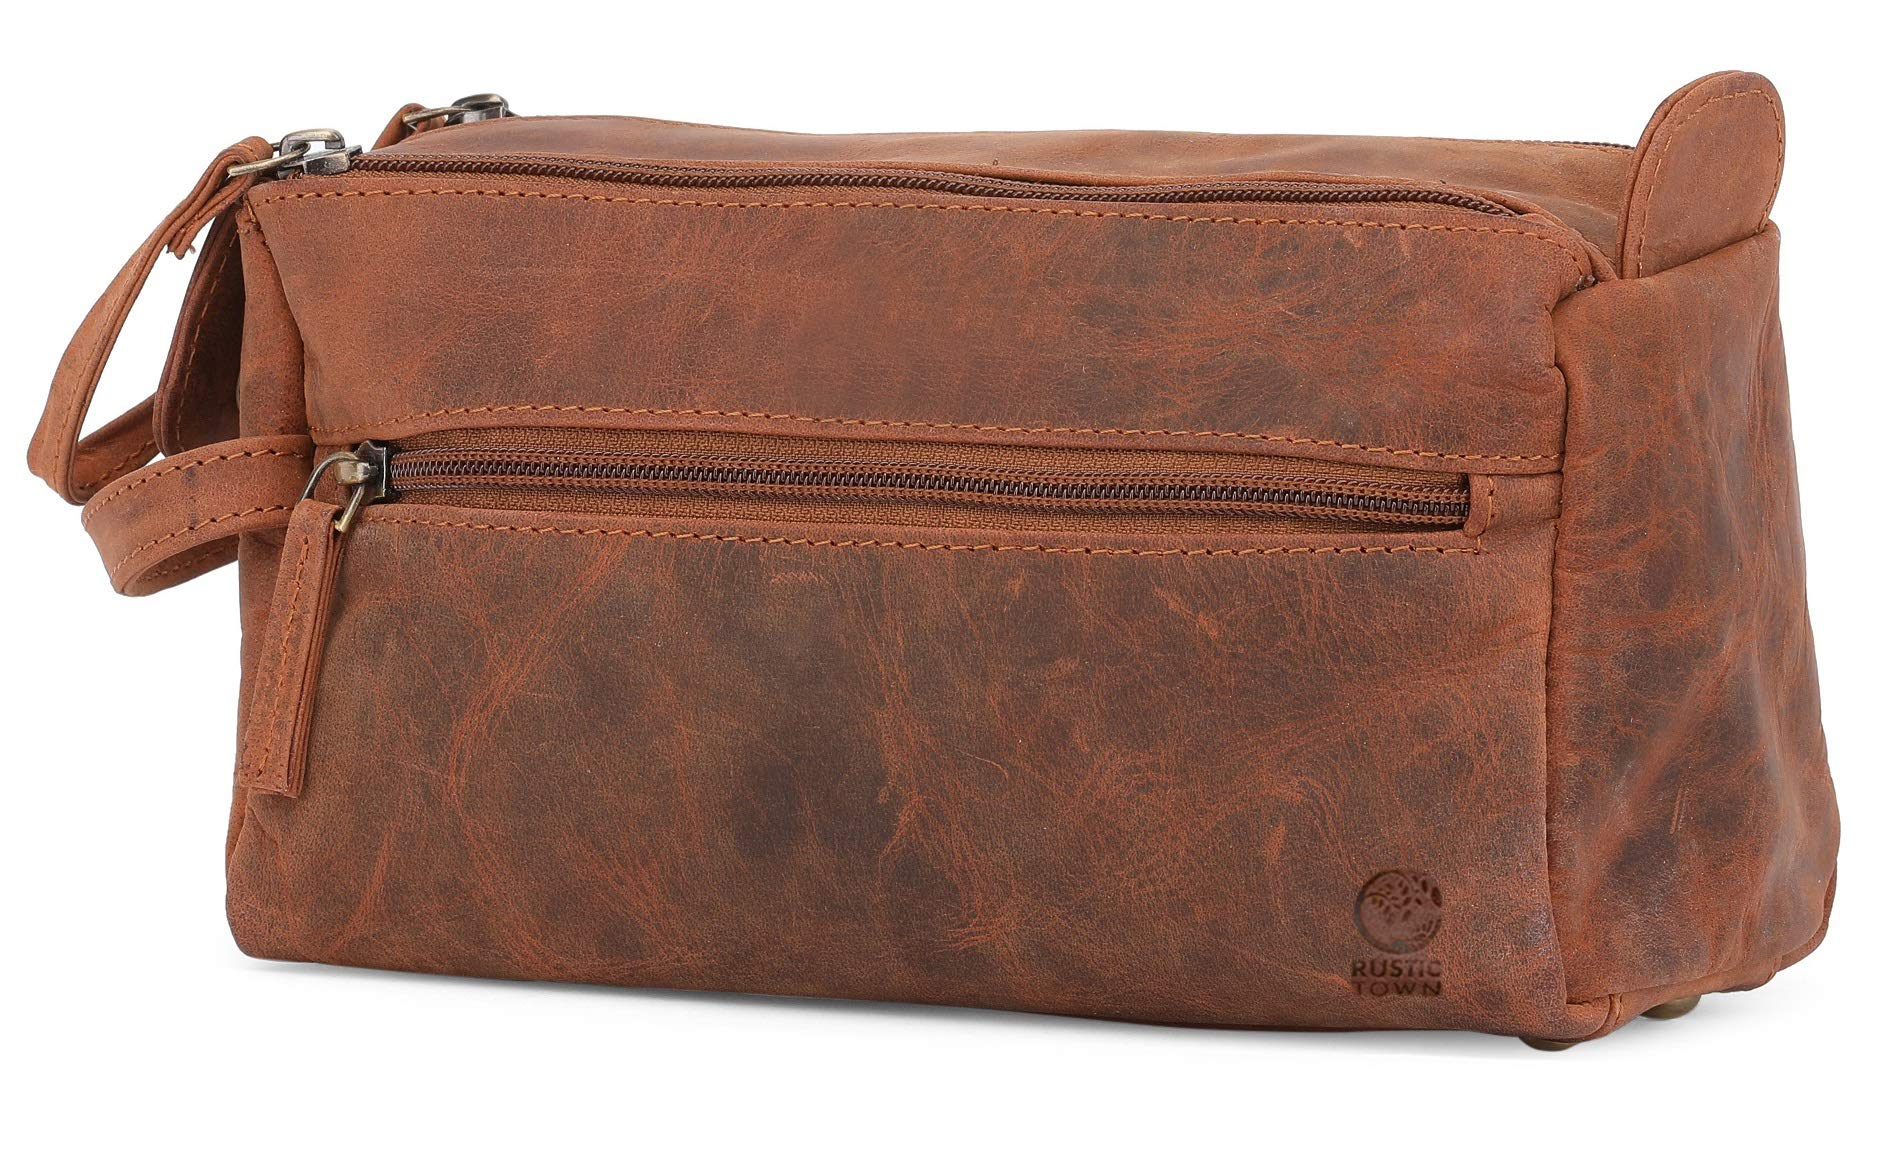 Genuine Leather Travel Toiletry Bag - Hygiene Organizer Dopp Kit By Rustic Town (Brown) by Rustic Town